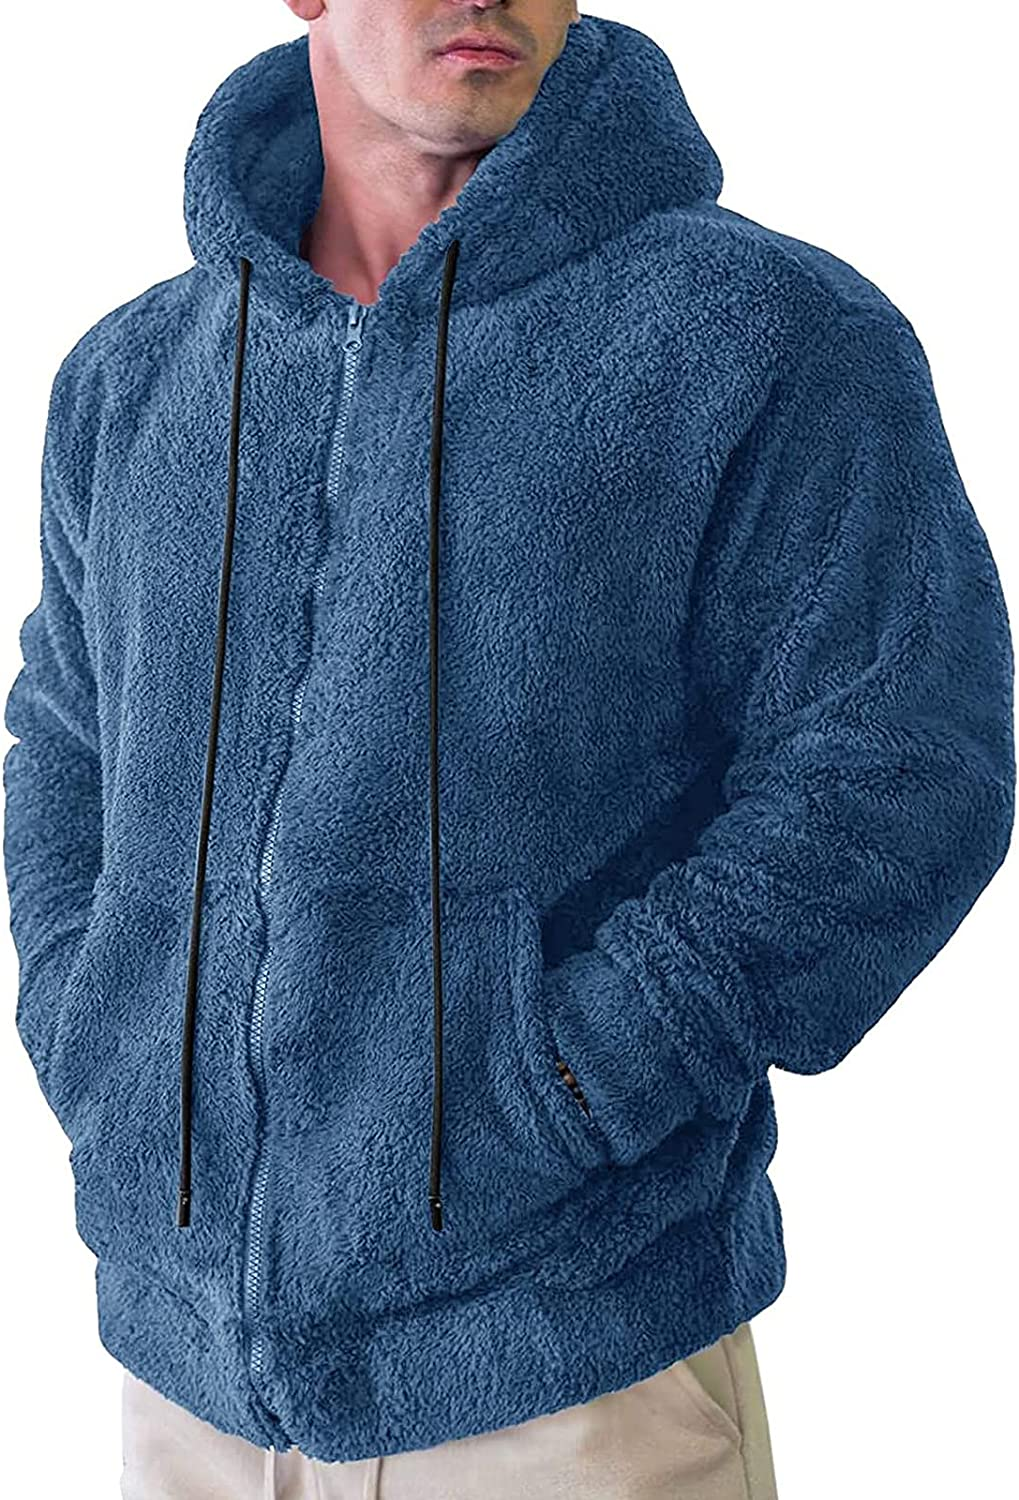 Esbelle Mens Fuzzy Sherpa Pullover We OFFer at cheap prices Hoodie Solid Long Sweatshirts Popular overseas